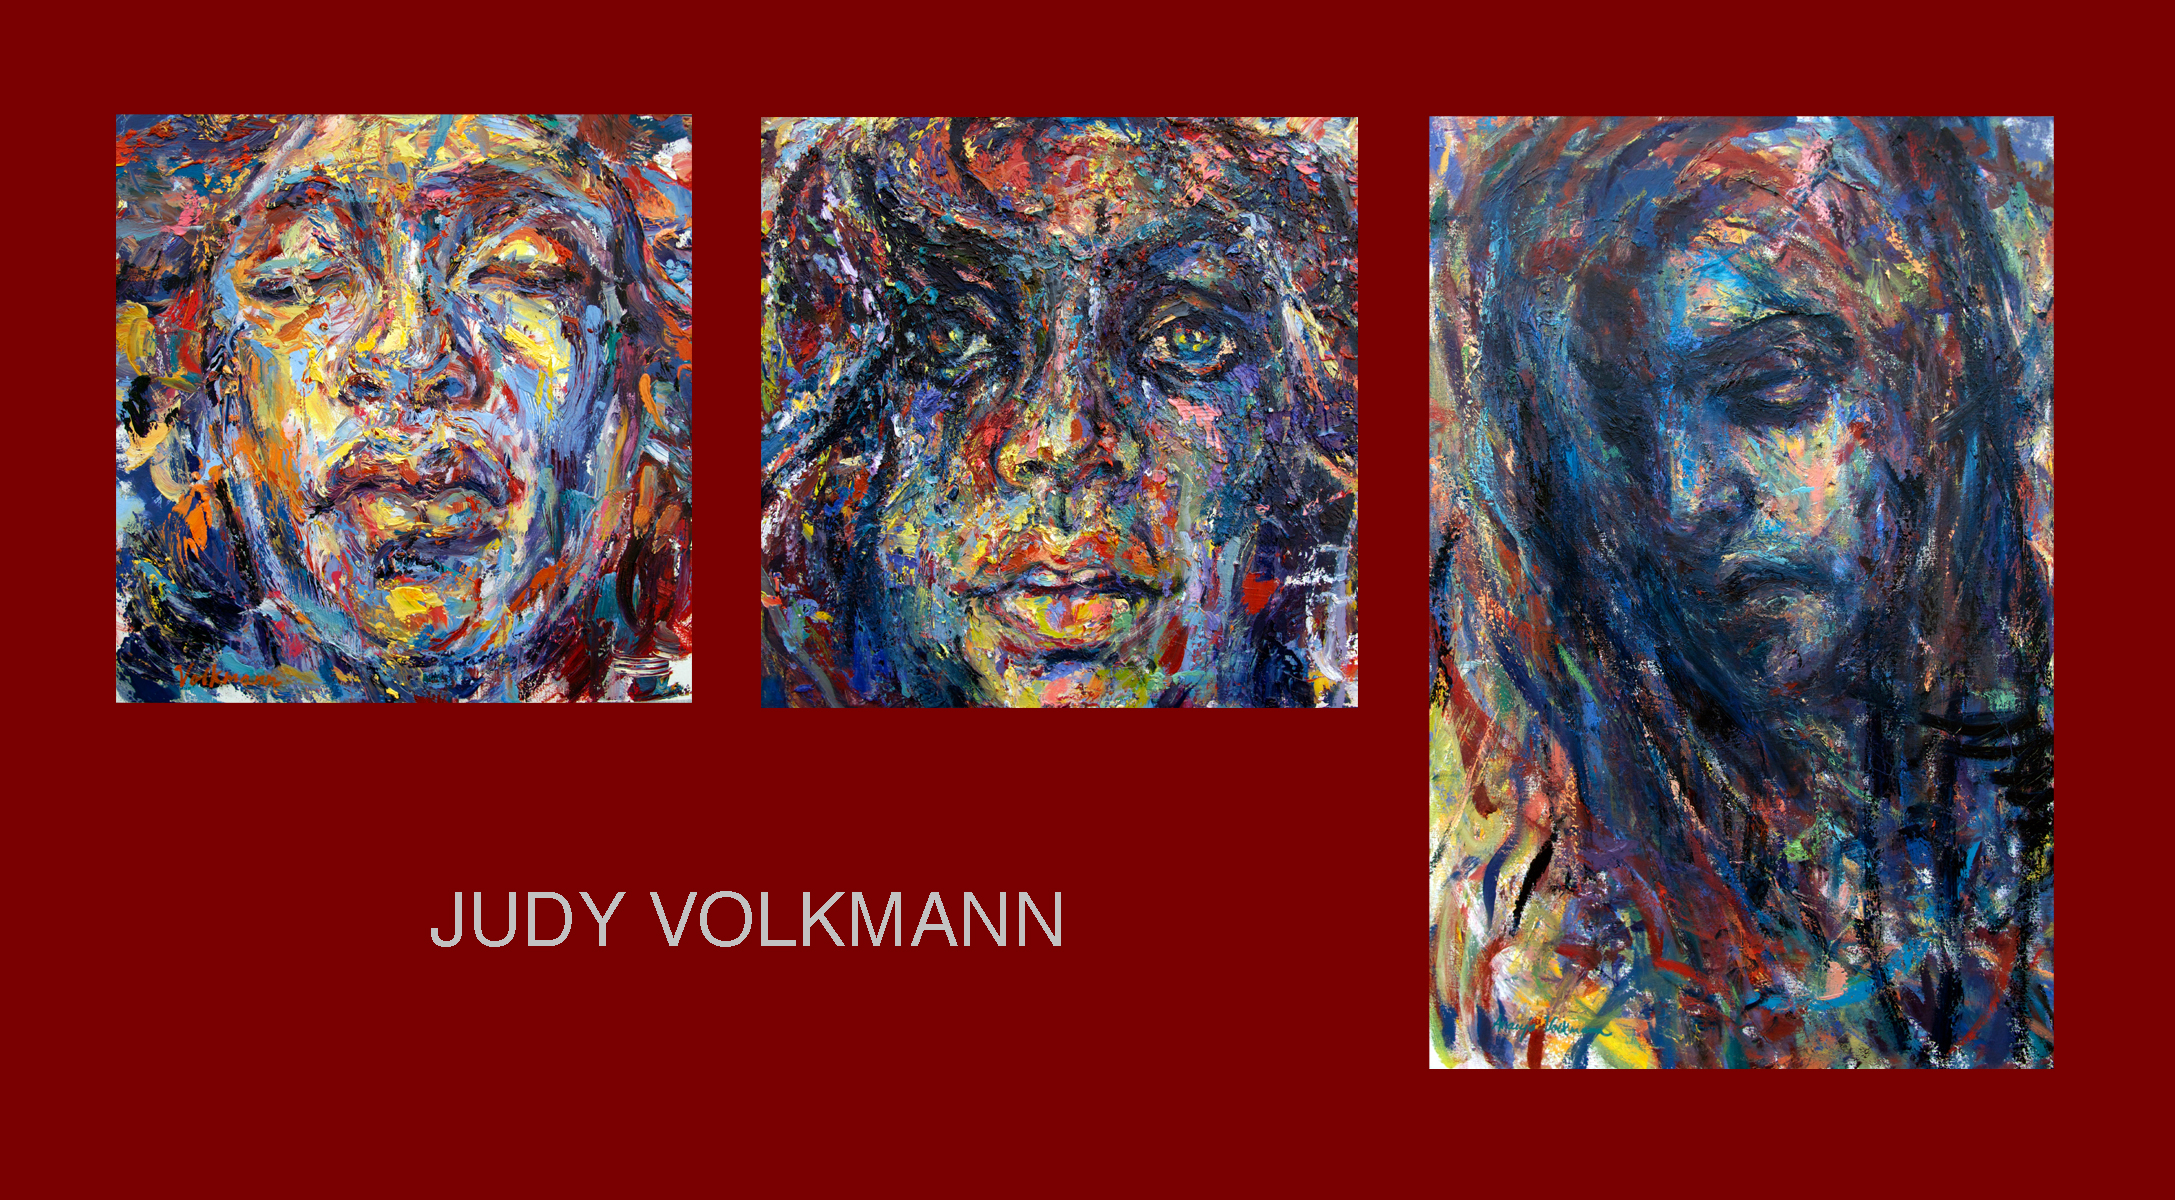 Original Oil Paintings by Judy Volkmann will be on display and available at Judith Klein Art Gallery